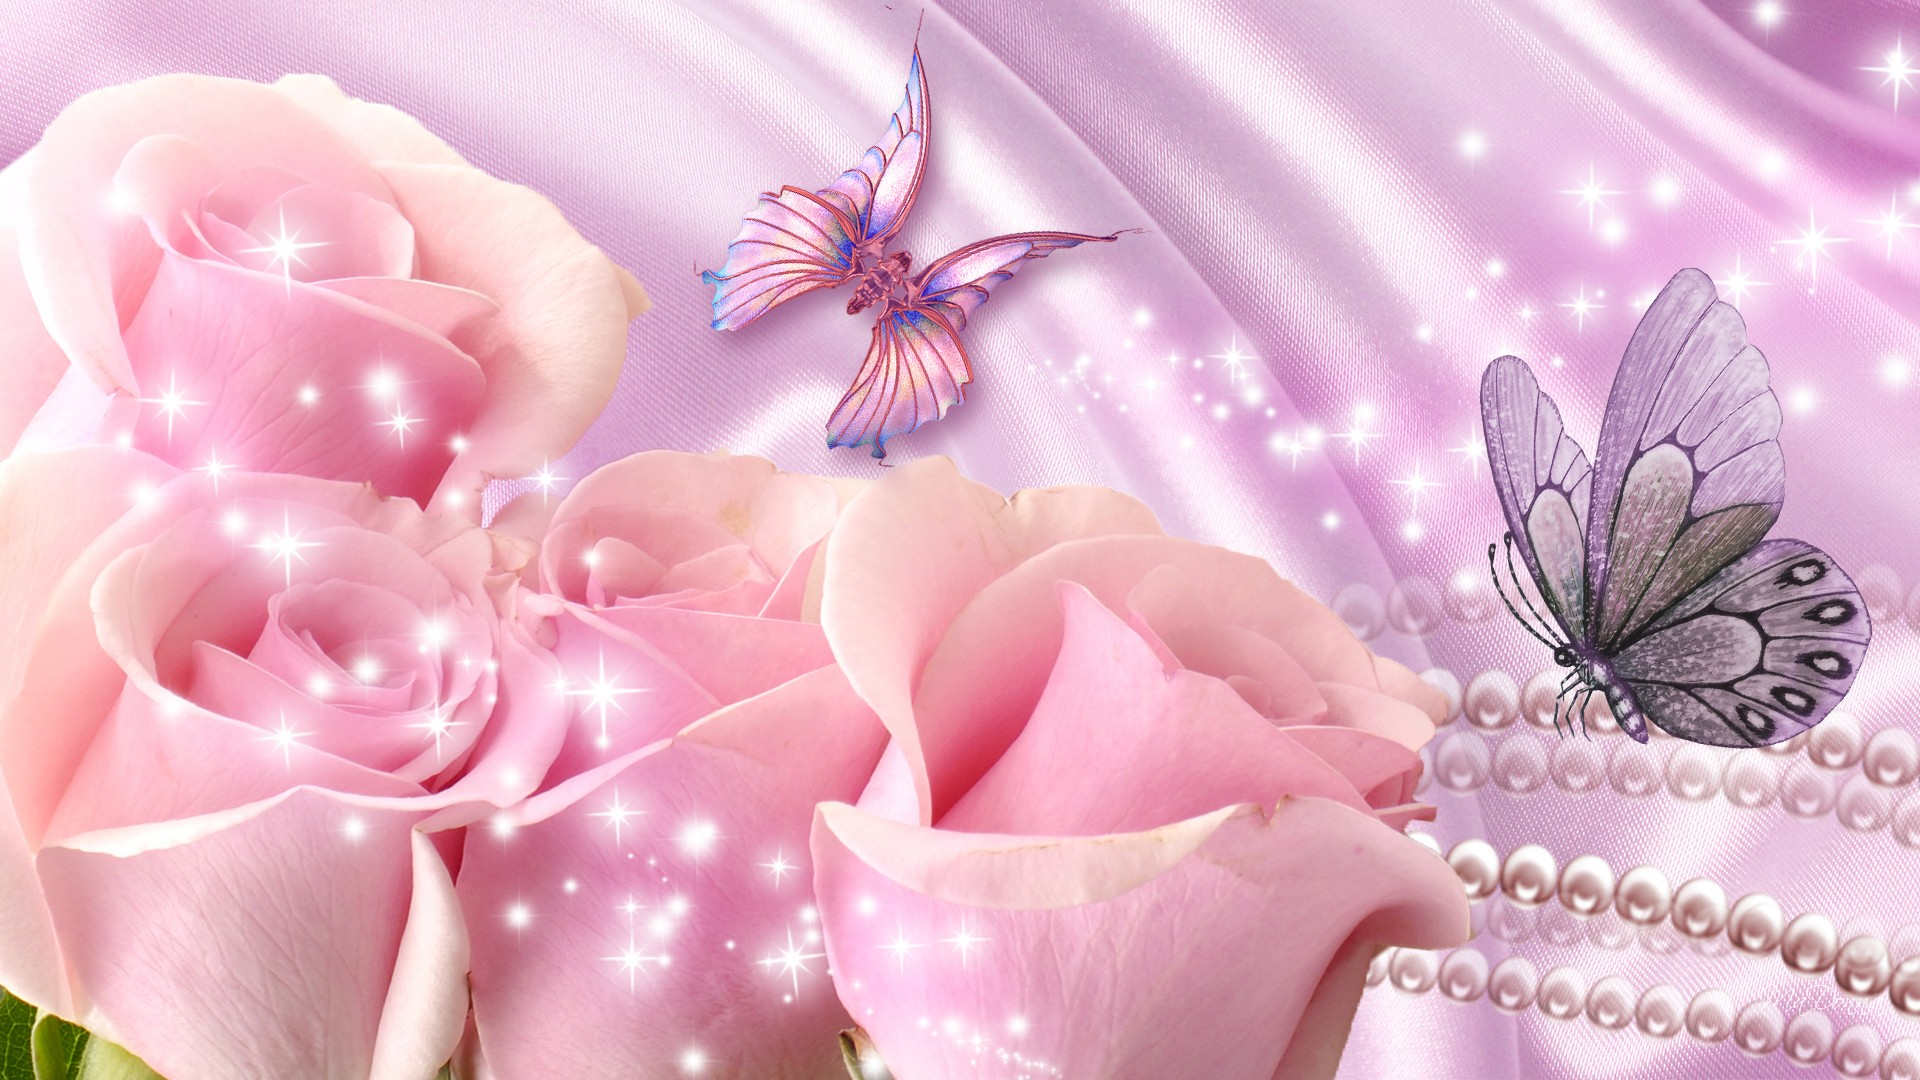 butterflies with pink rose